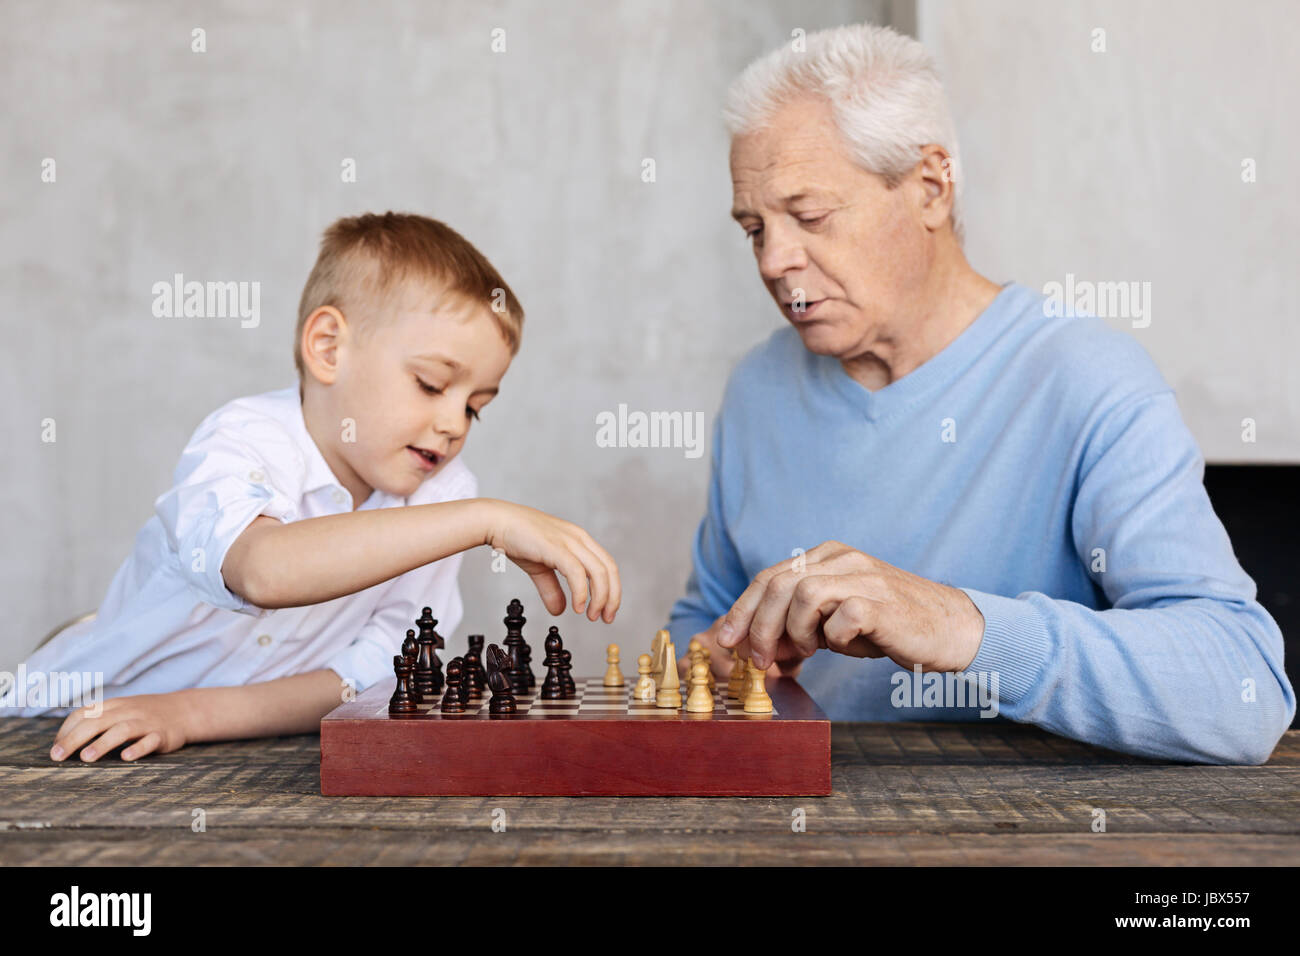 Cute kid and his grandparent playing chess - Stock Image